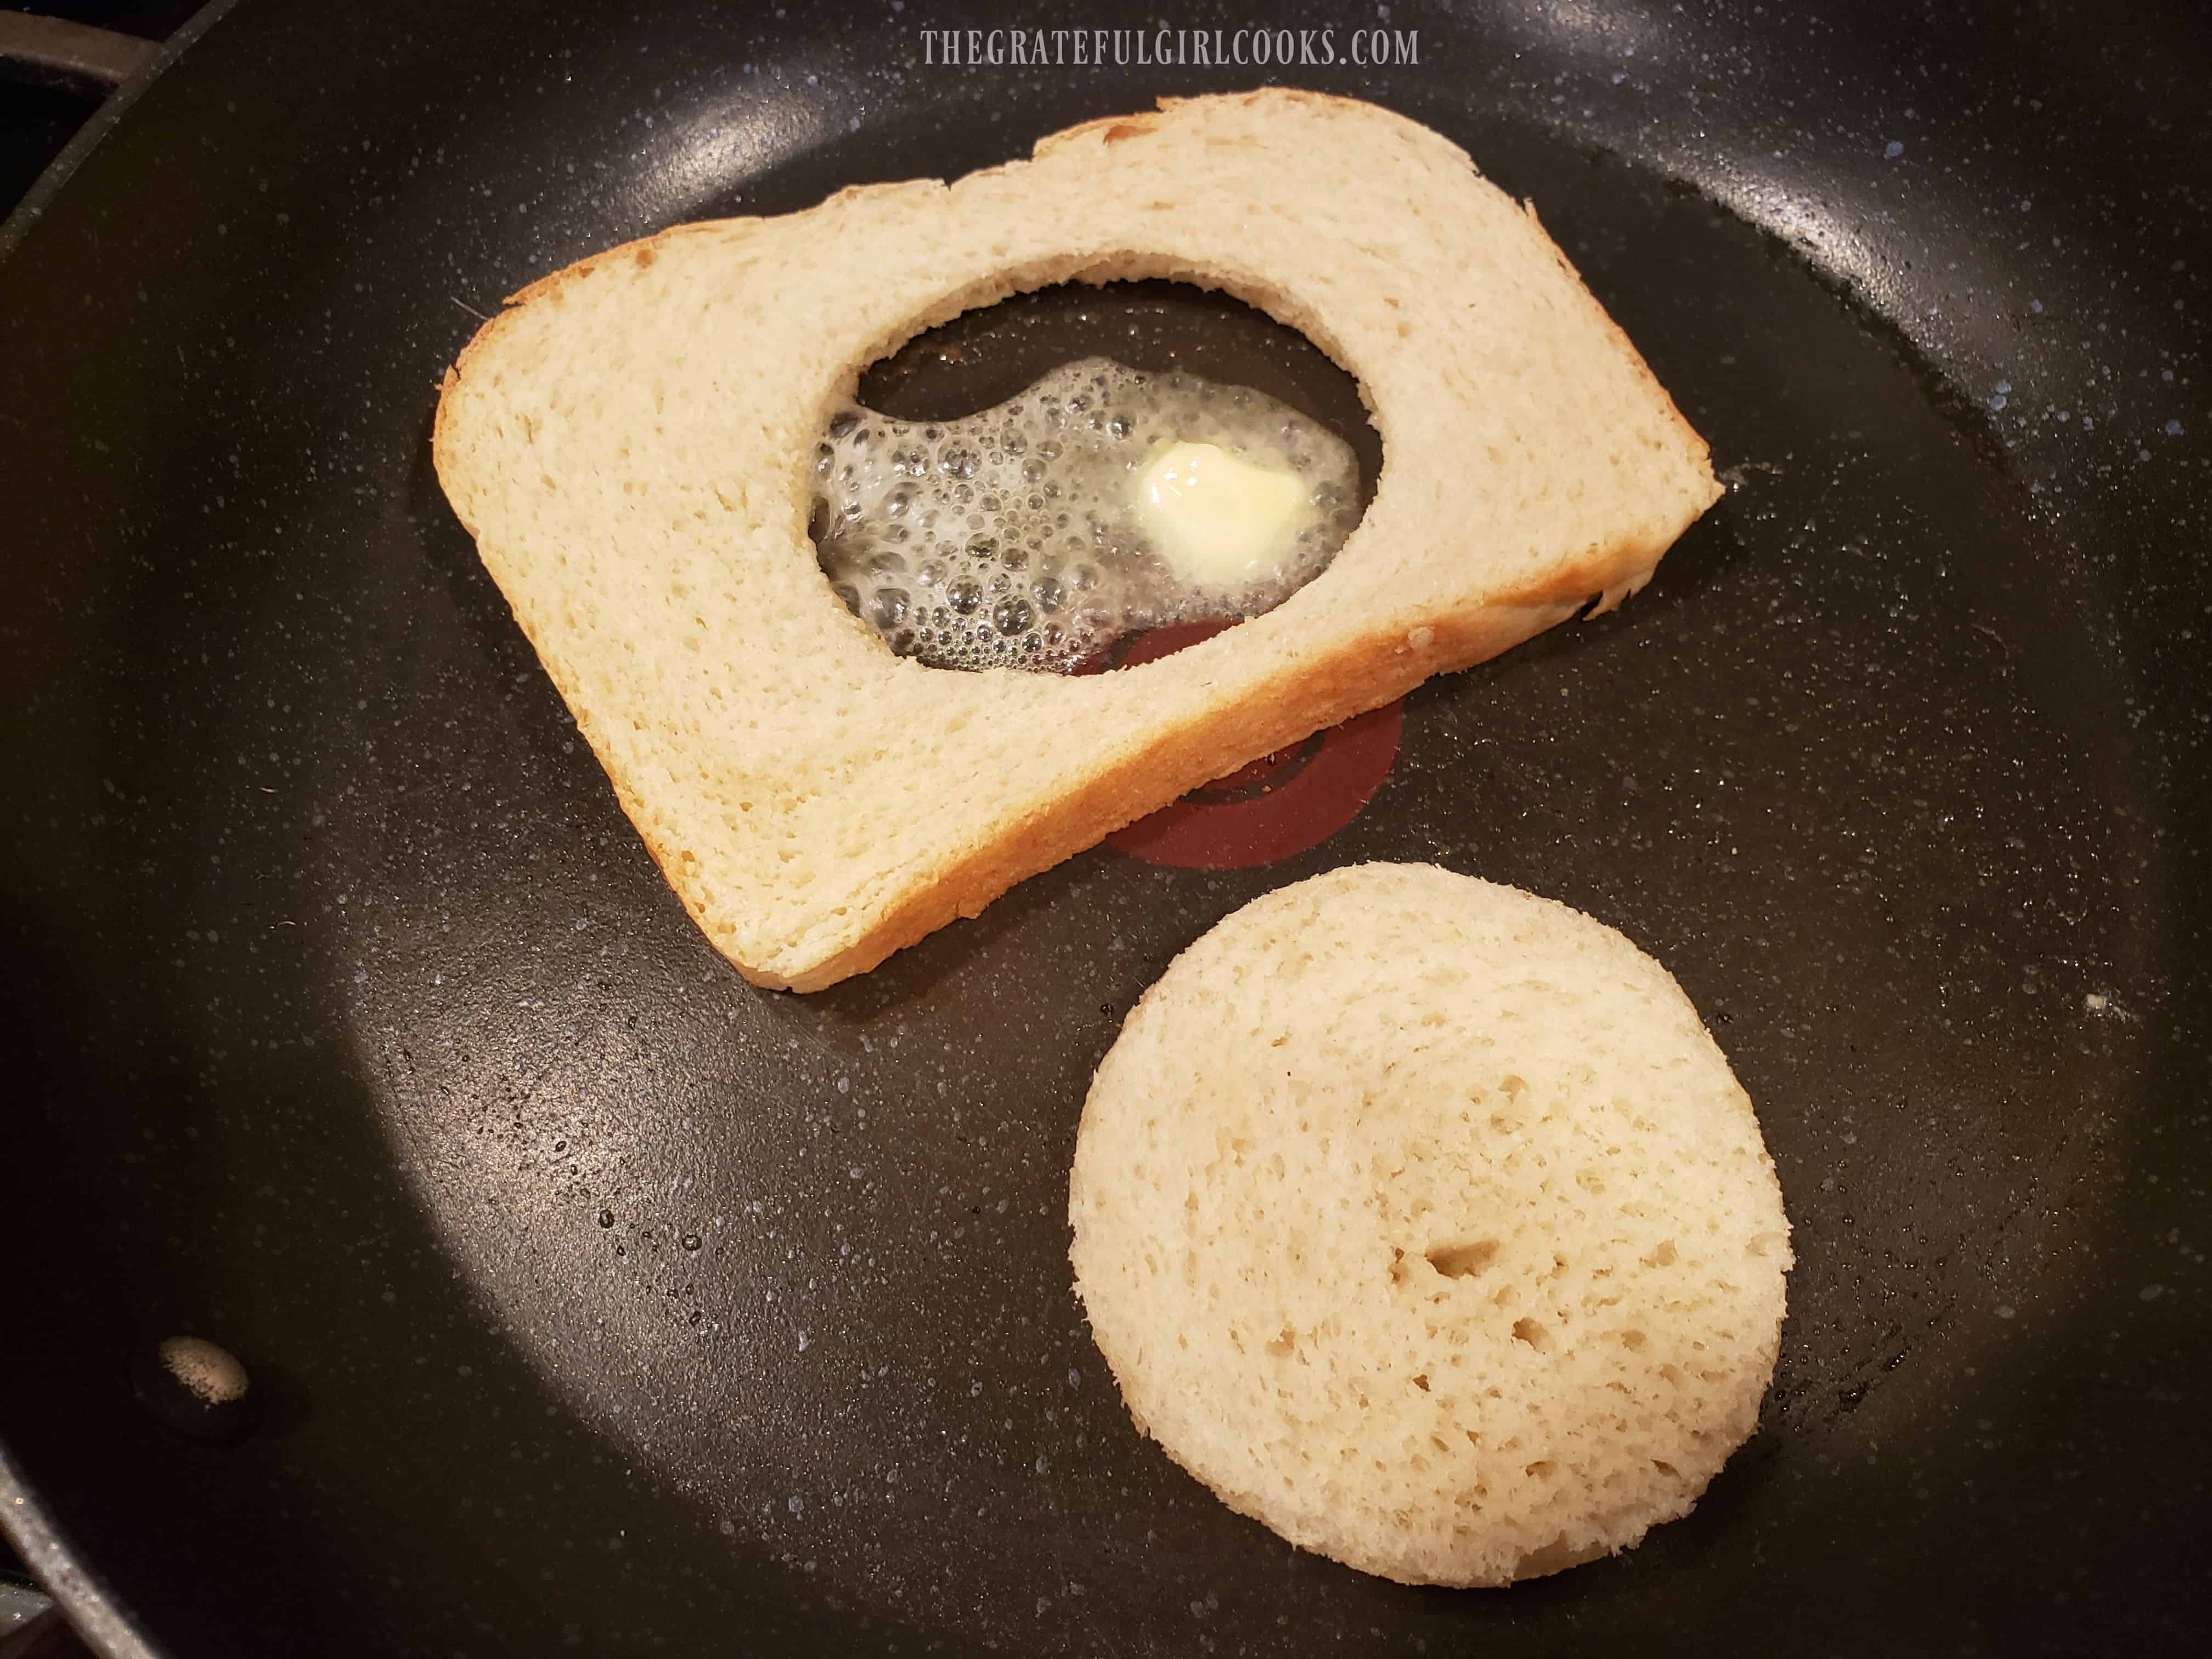 Buttered bread and circle are cooked butter side down until browned.